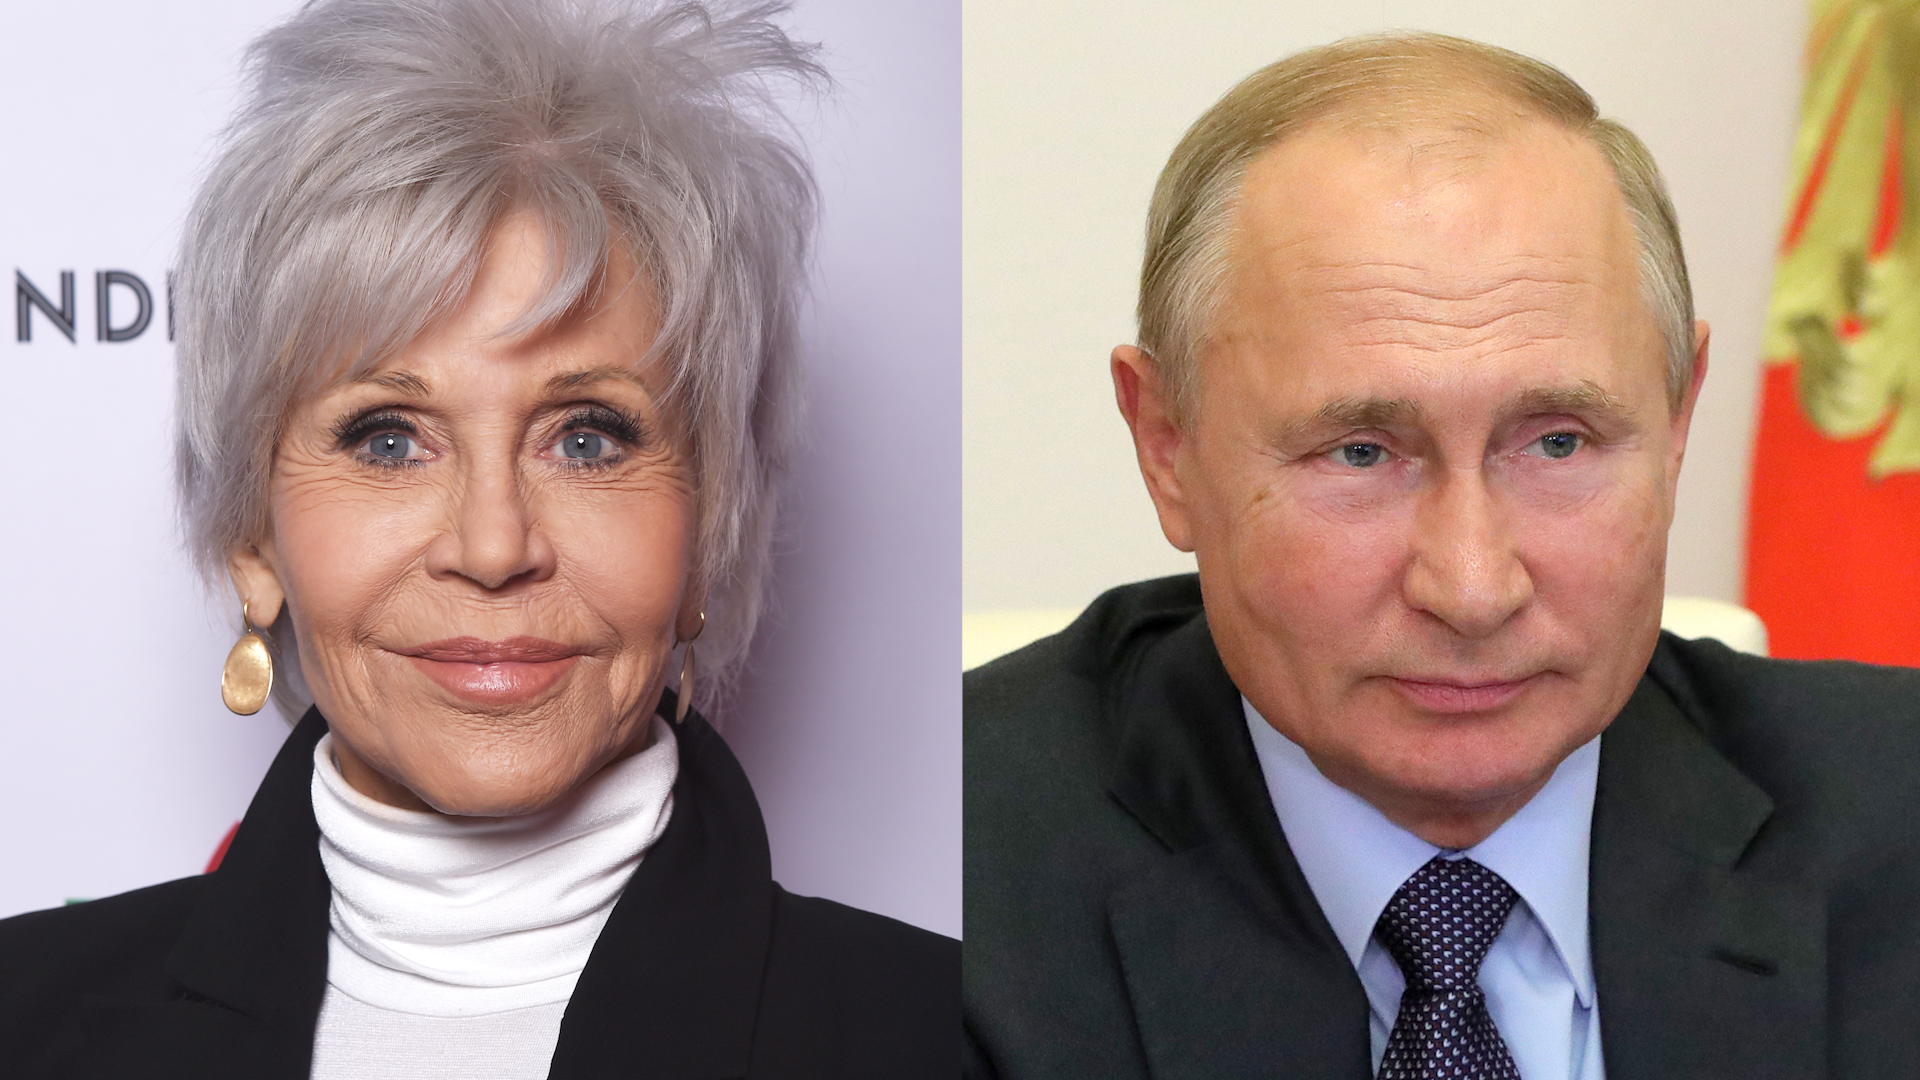 Jane Fonda's bizarre story about Vladimir Putin once being her travel guide